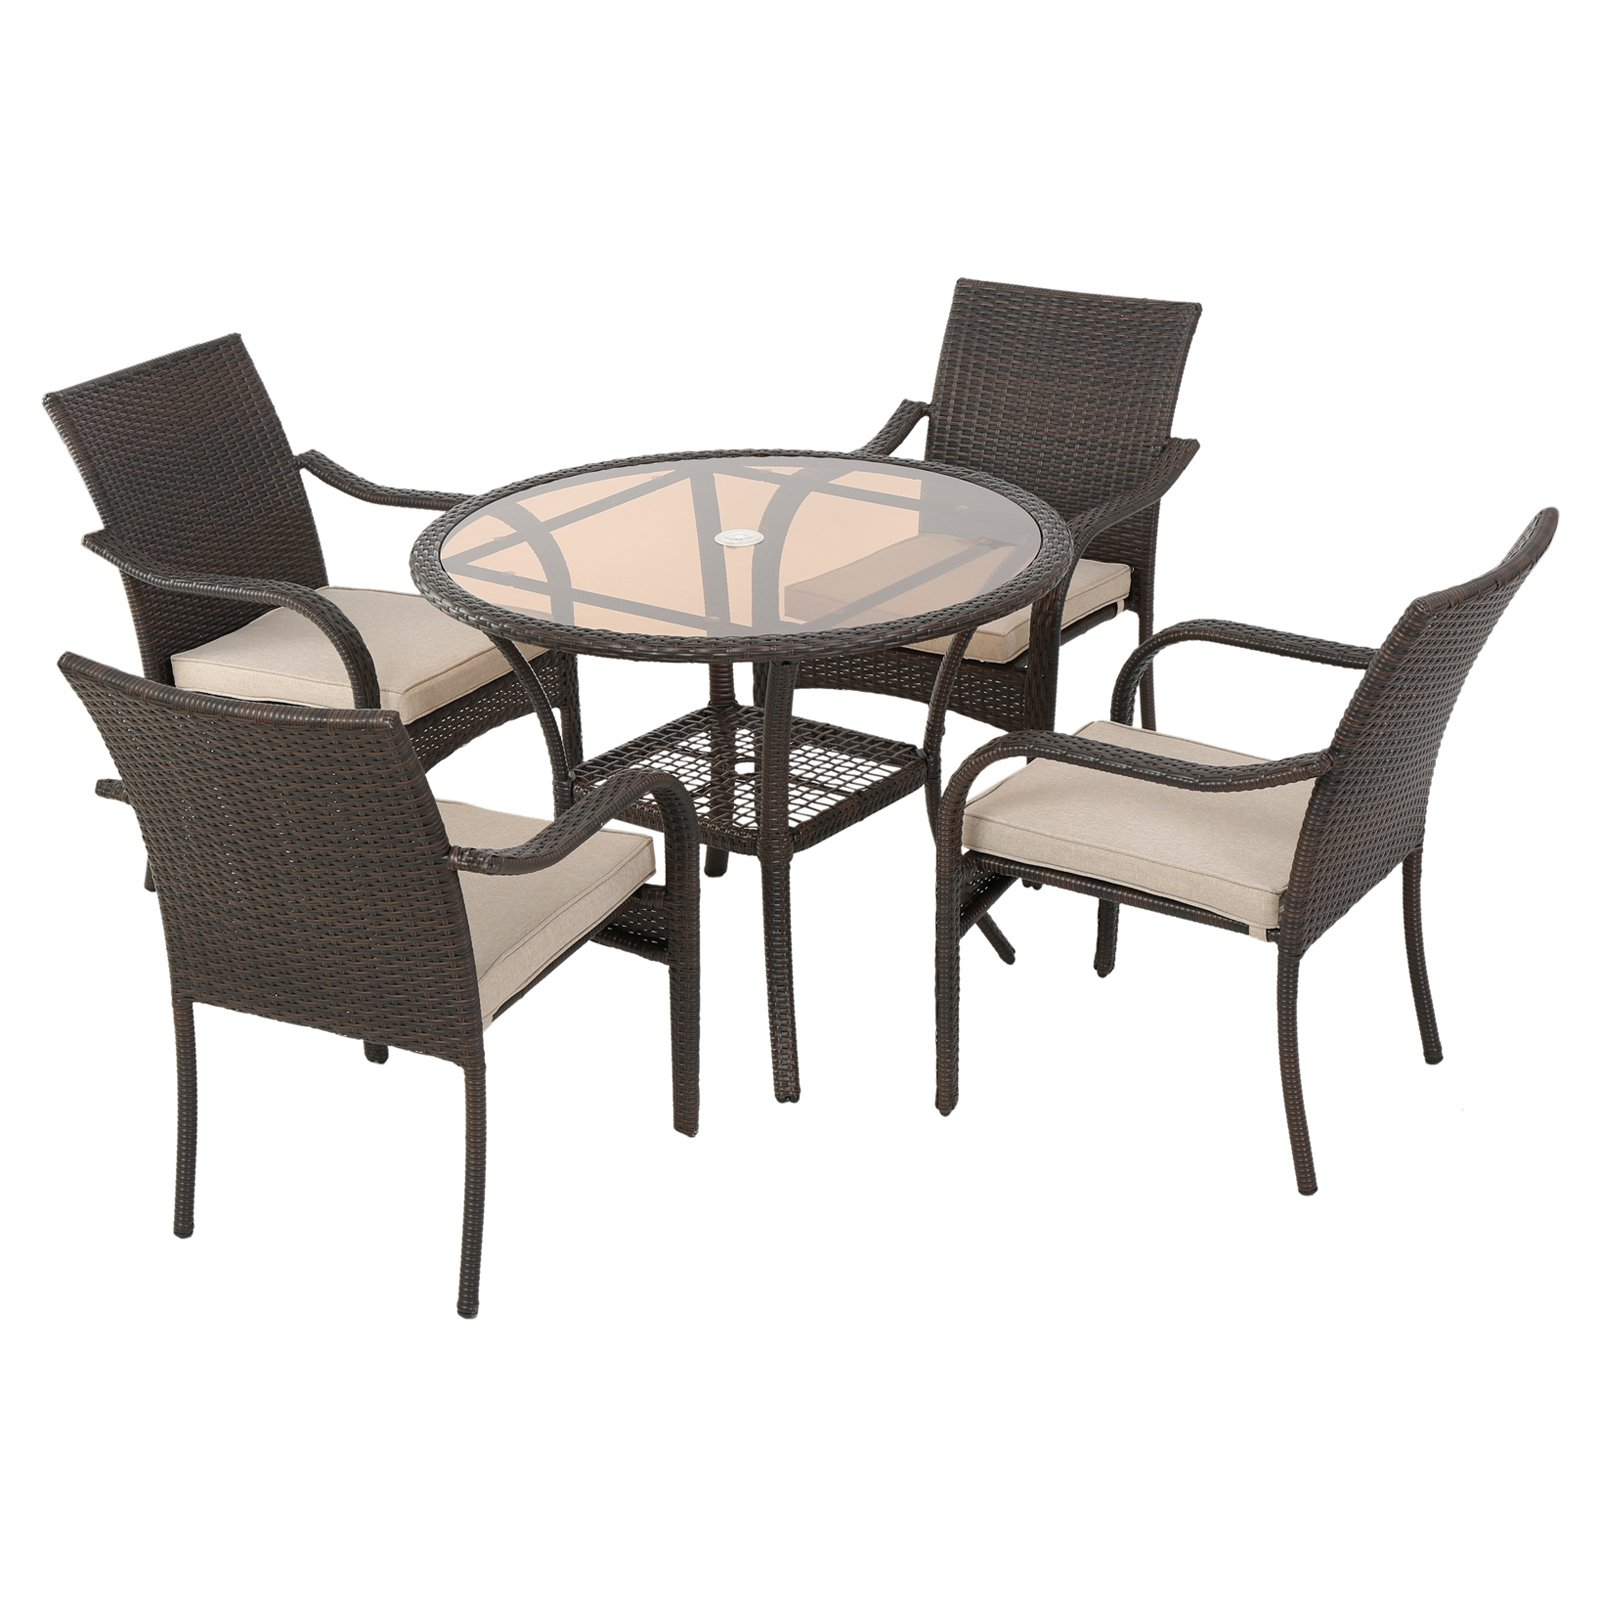 Bailey Wicker 5 Piece Round Patio Dining Set With Cushion